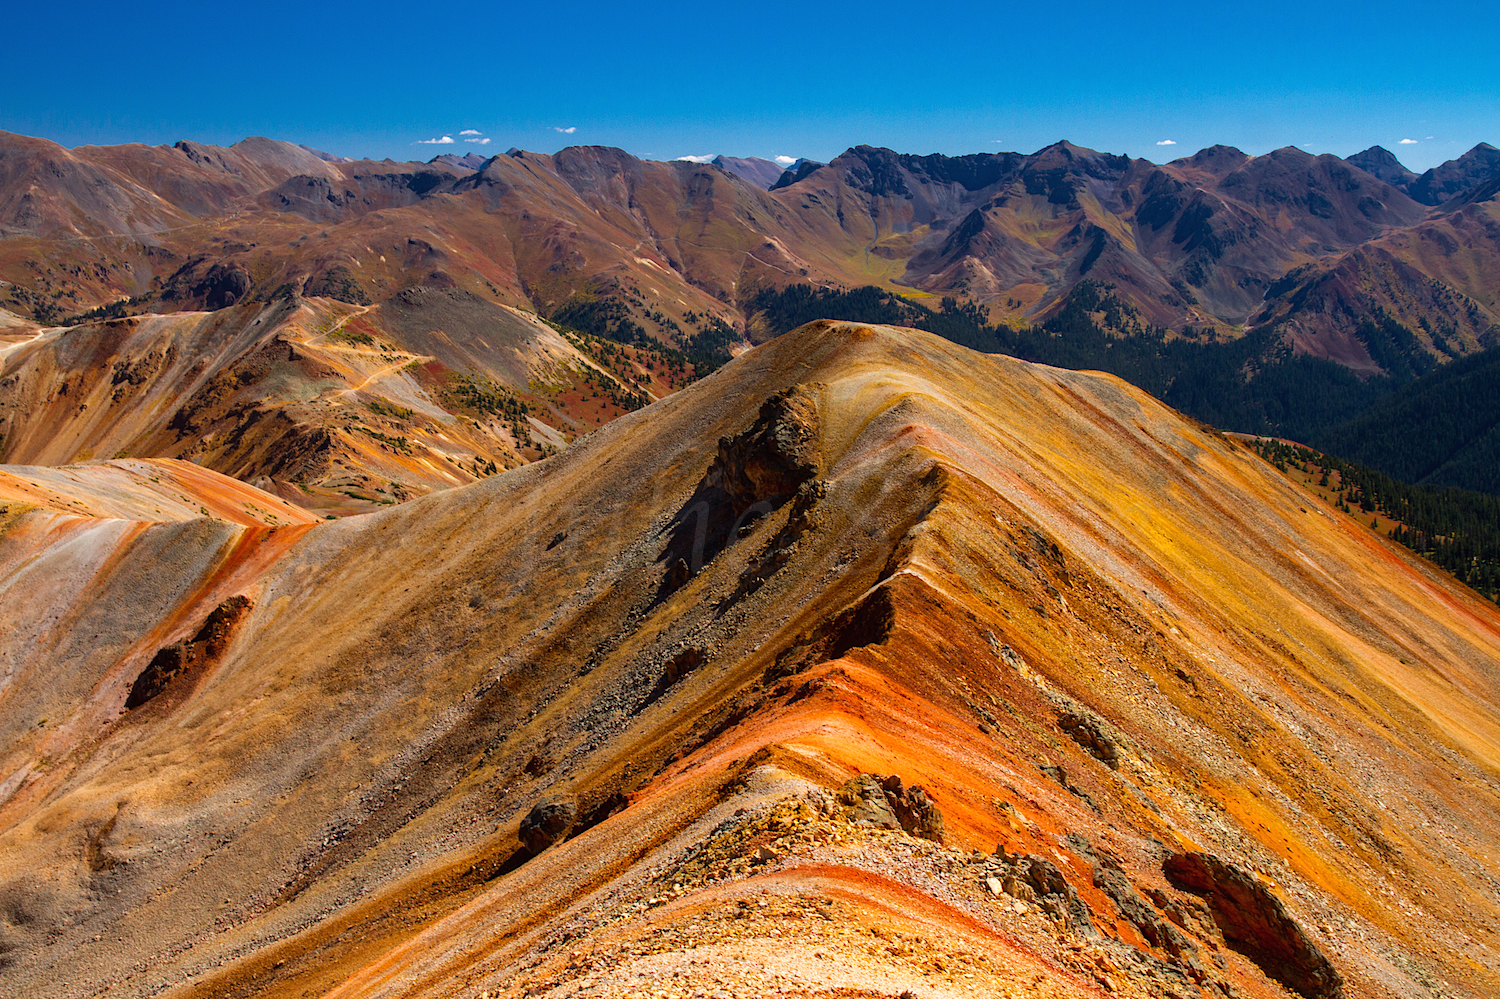 Red Mountain #3, Image #1061